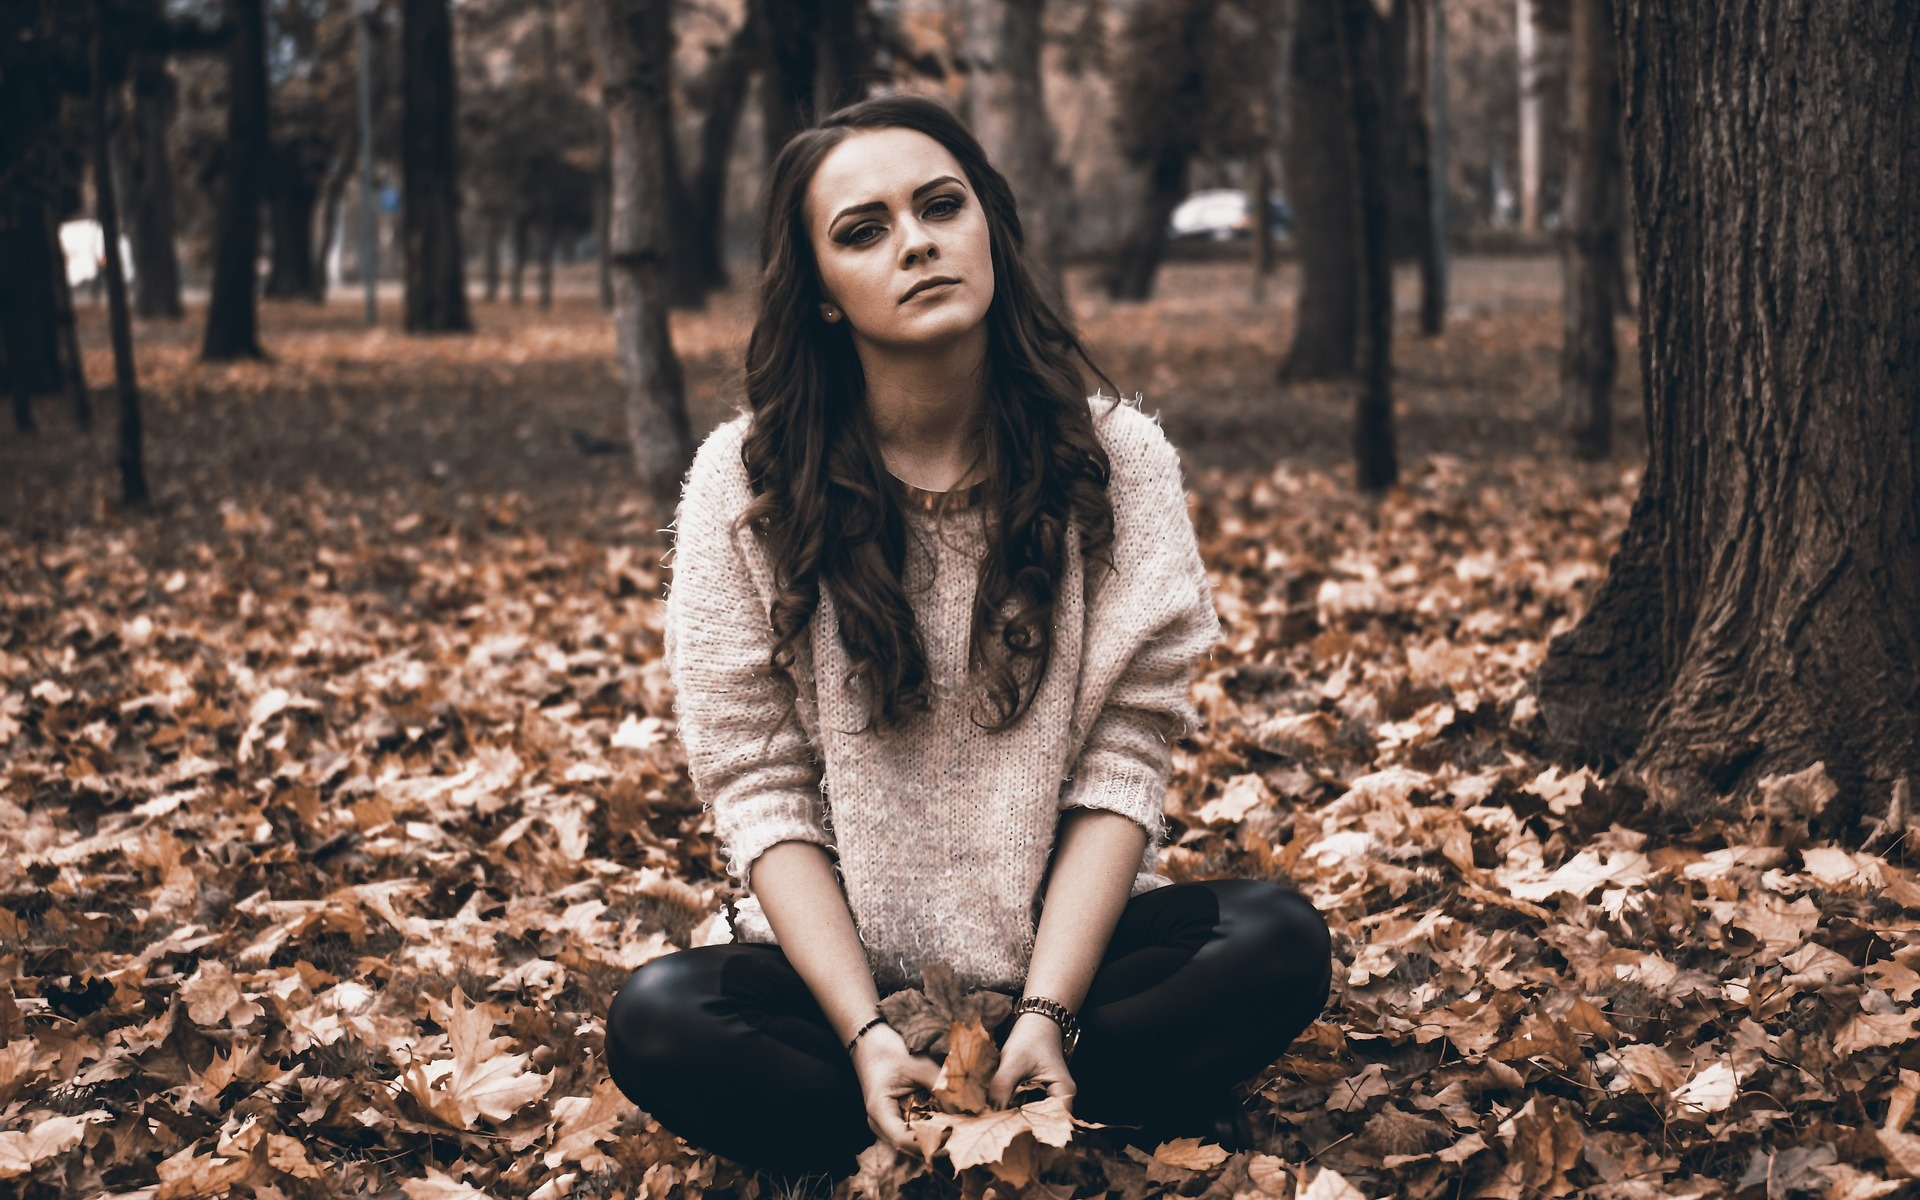 Depressed white woman sitting on ground surrounded by leaves near trees